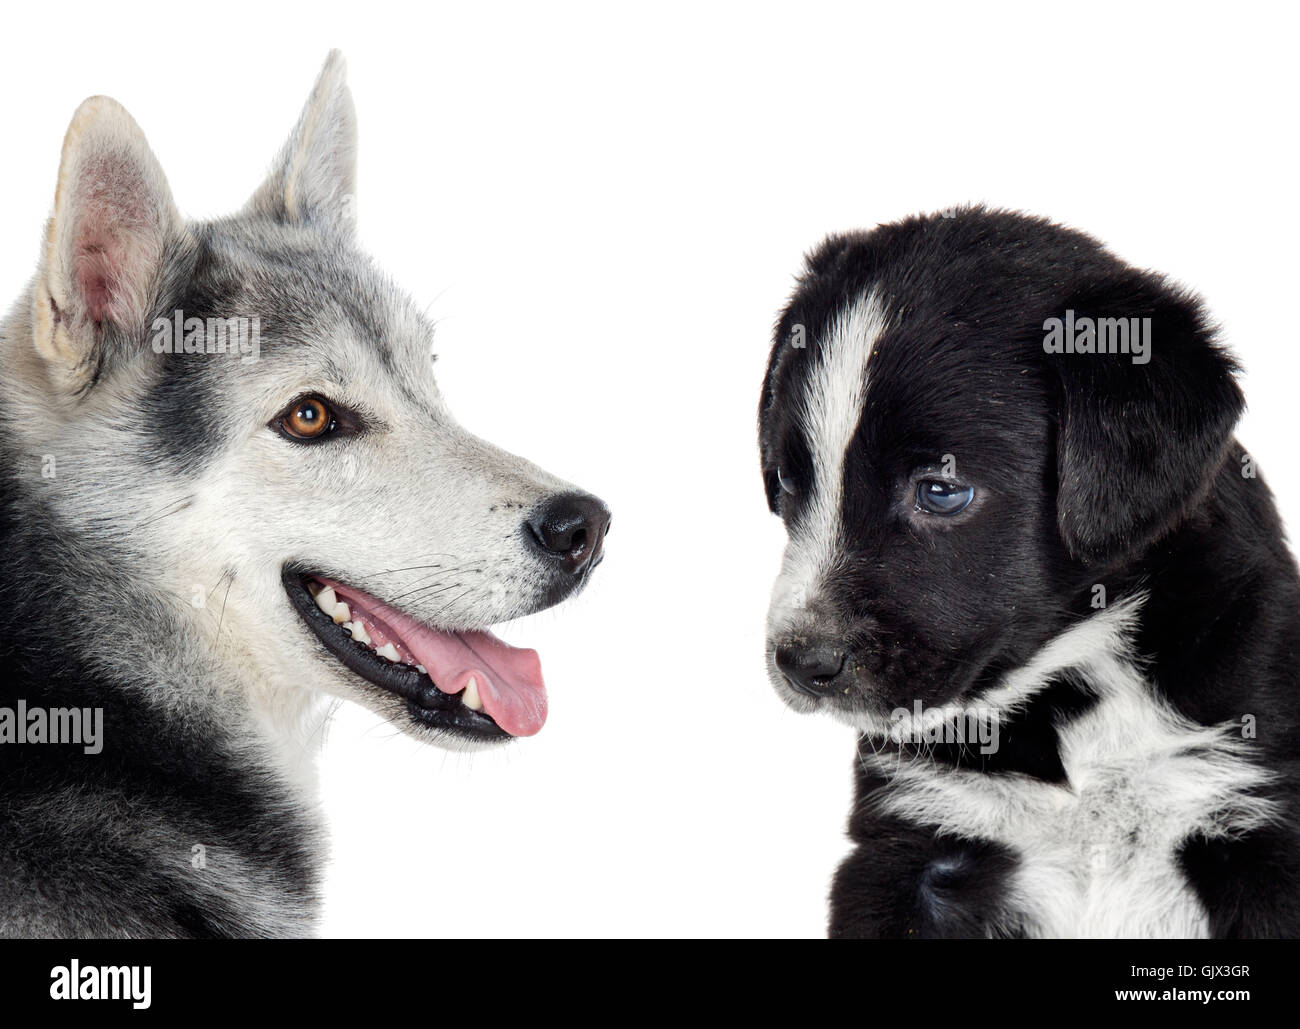 dogs different races - Stock Image